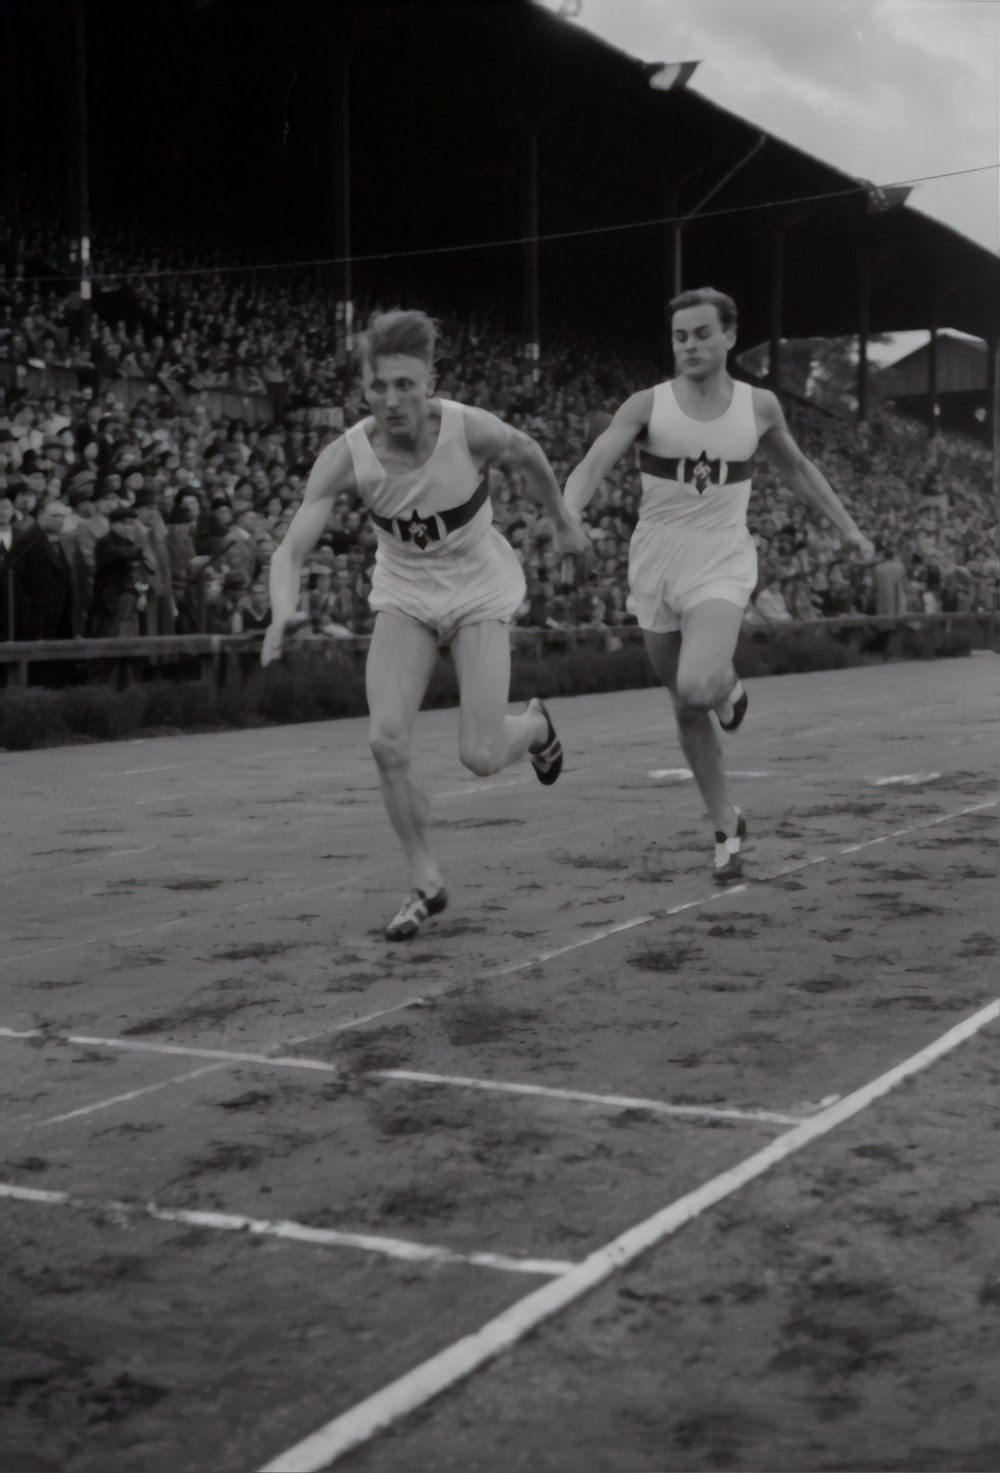 grayscale photography of men racing on track and field surrounded with people watching them